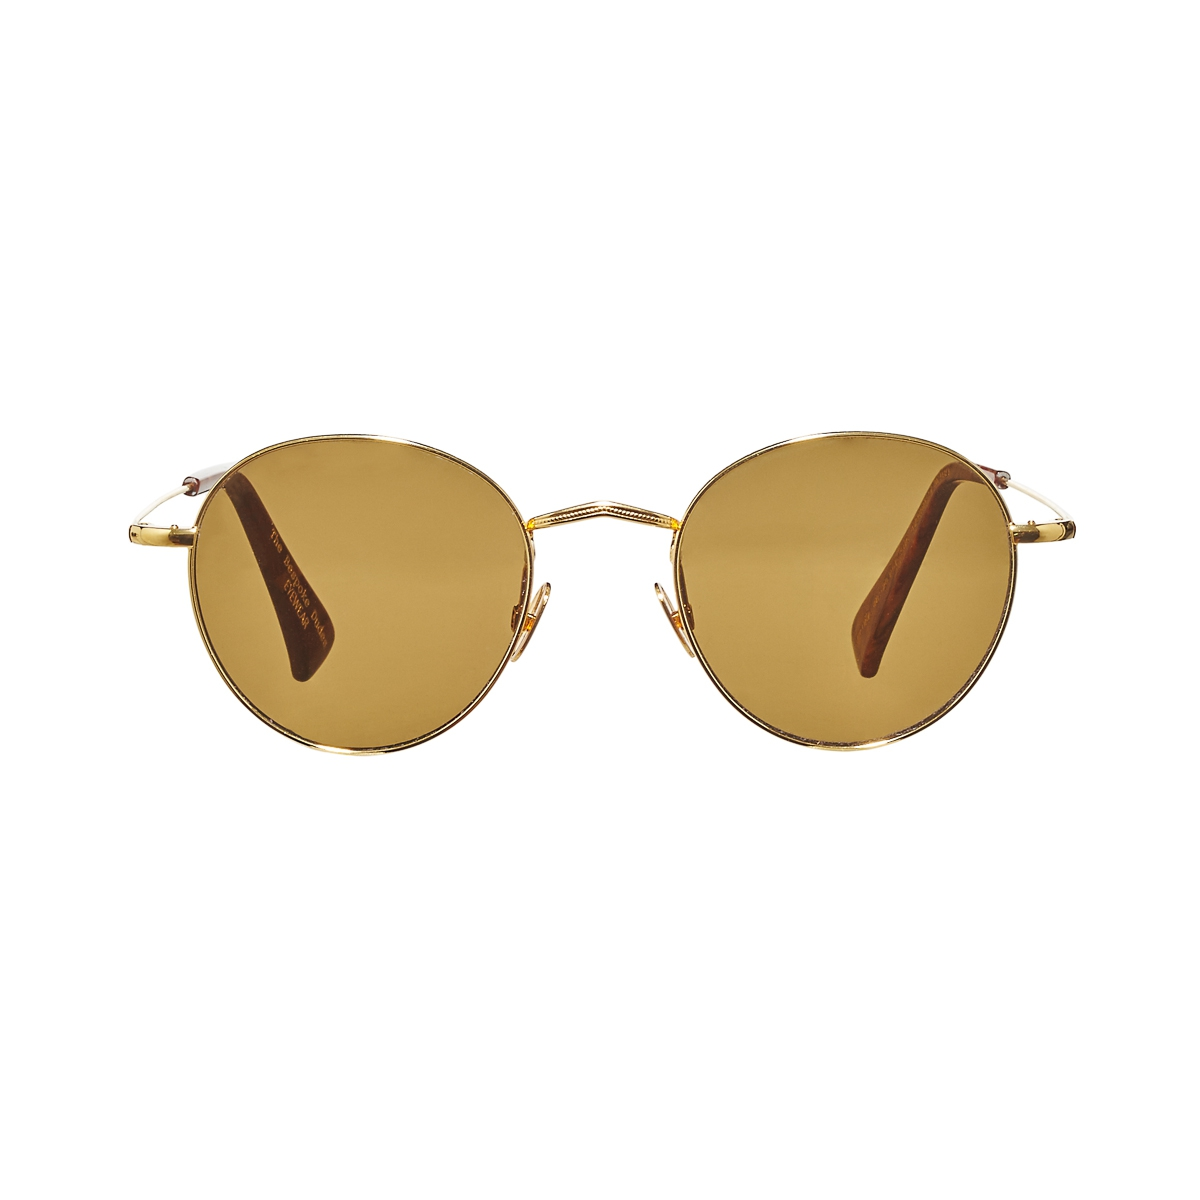 Vicuña e Ulster: the latest collections by TBD Eyewear Flat Zeiss lenses and noble materials, such as rhodium and 24 karat gold